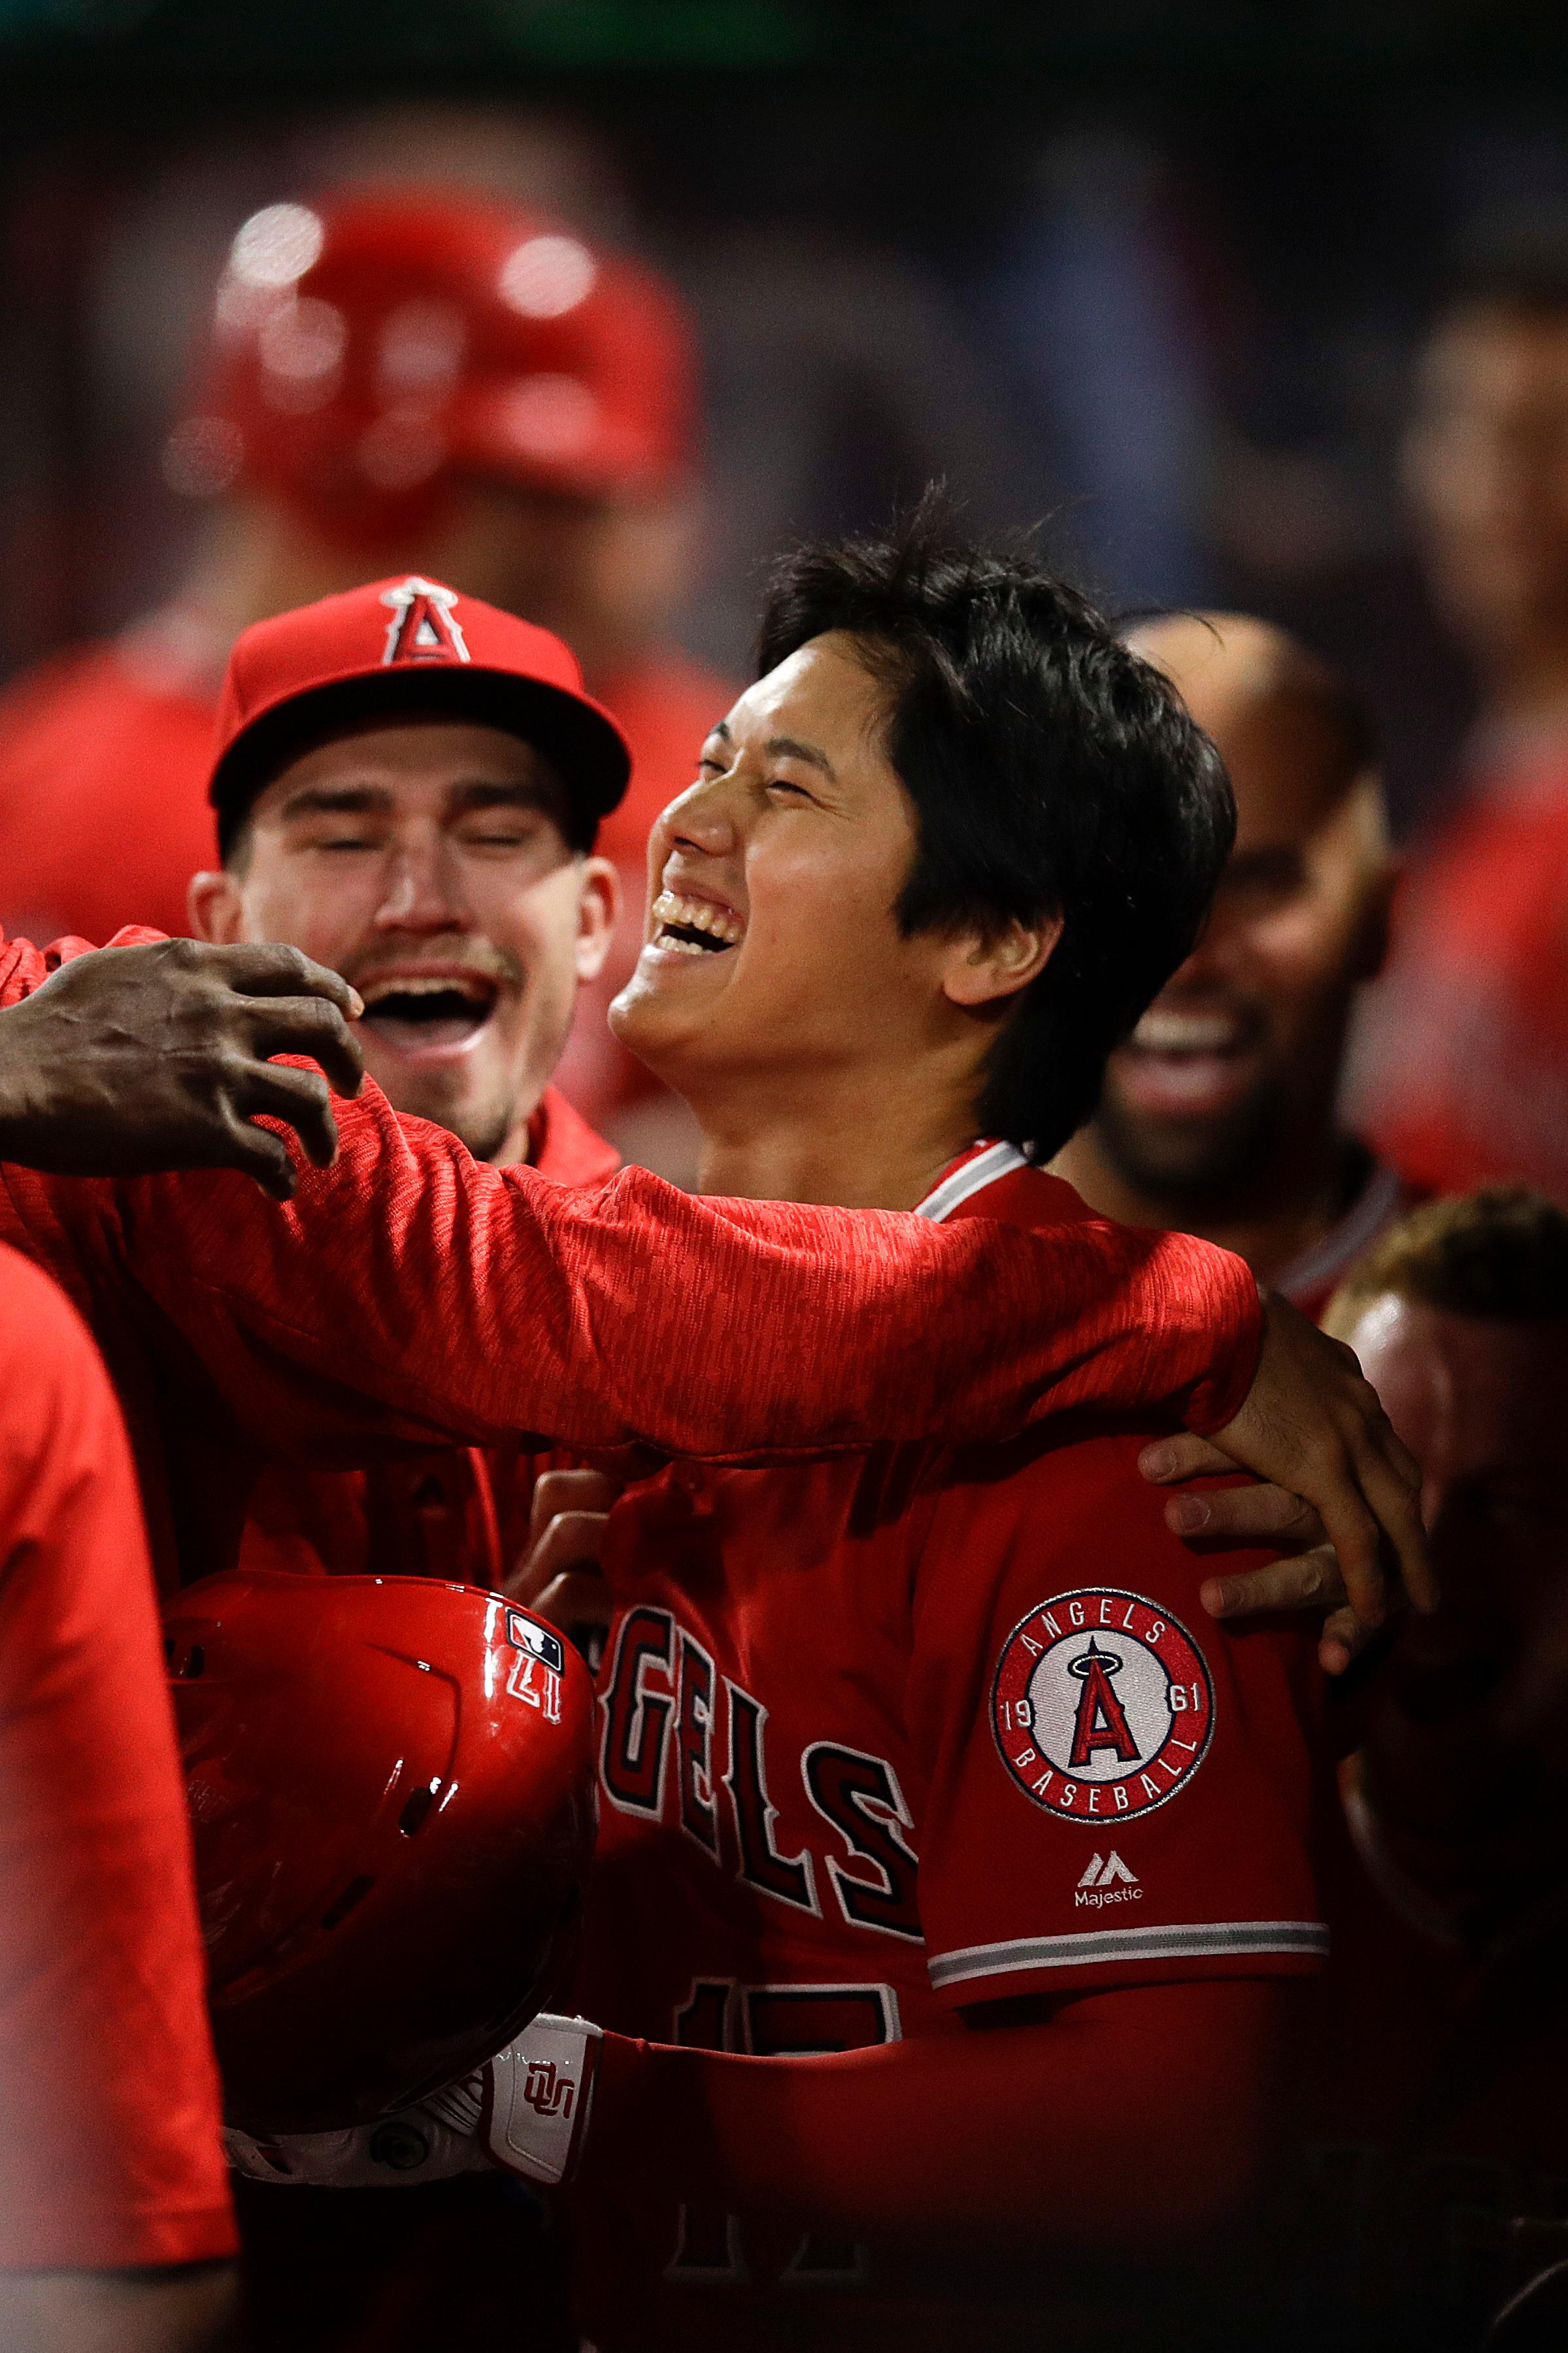 Los Angeles Angels starting pitcher Shohei Ohtani, of Japan, celebrates his three-run home run in the dugout during the first inning of a baseball game against the Cleveland Indians, Tuesday, April 3, 2018, in Anaheim, Calif. (AP Photo/Jae C. Hong)